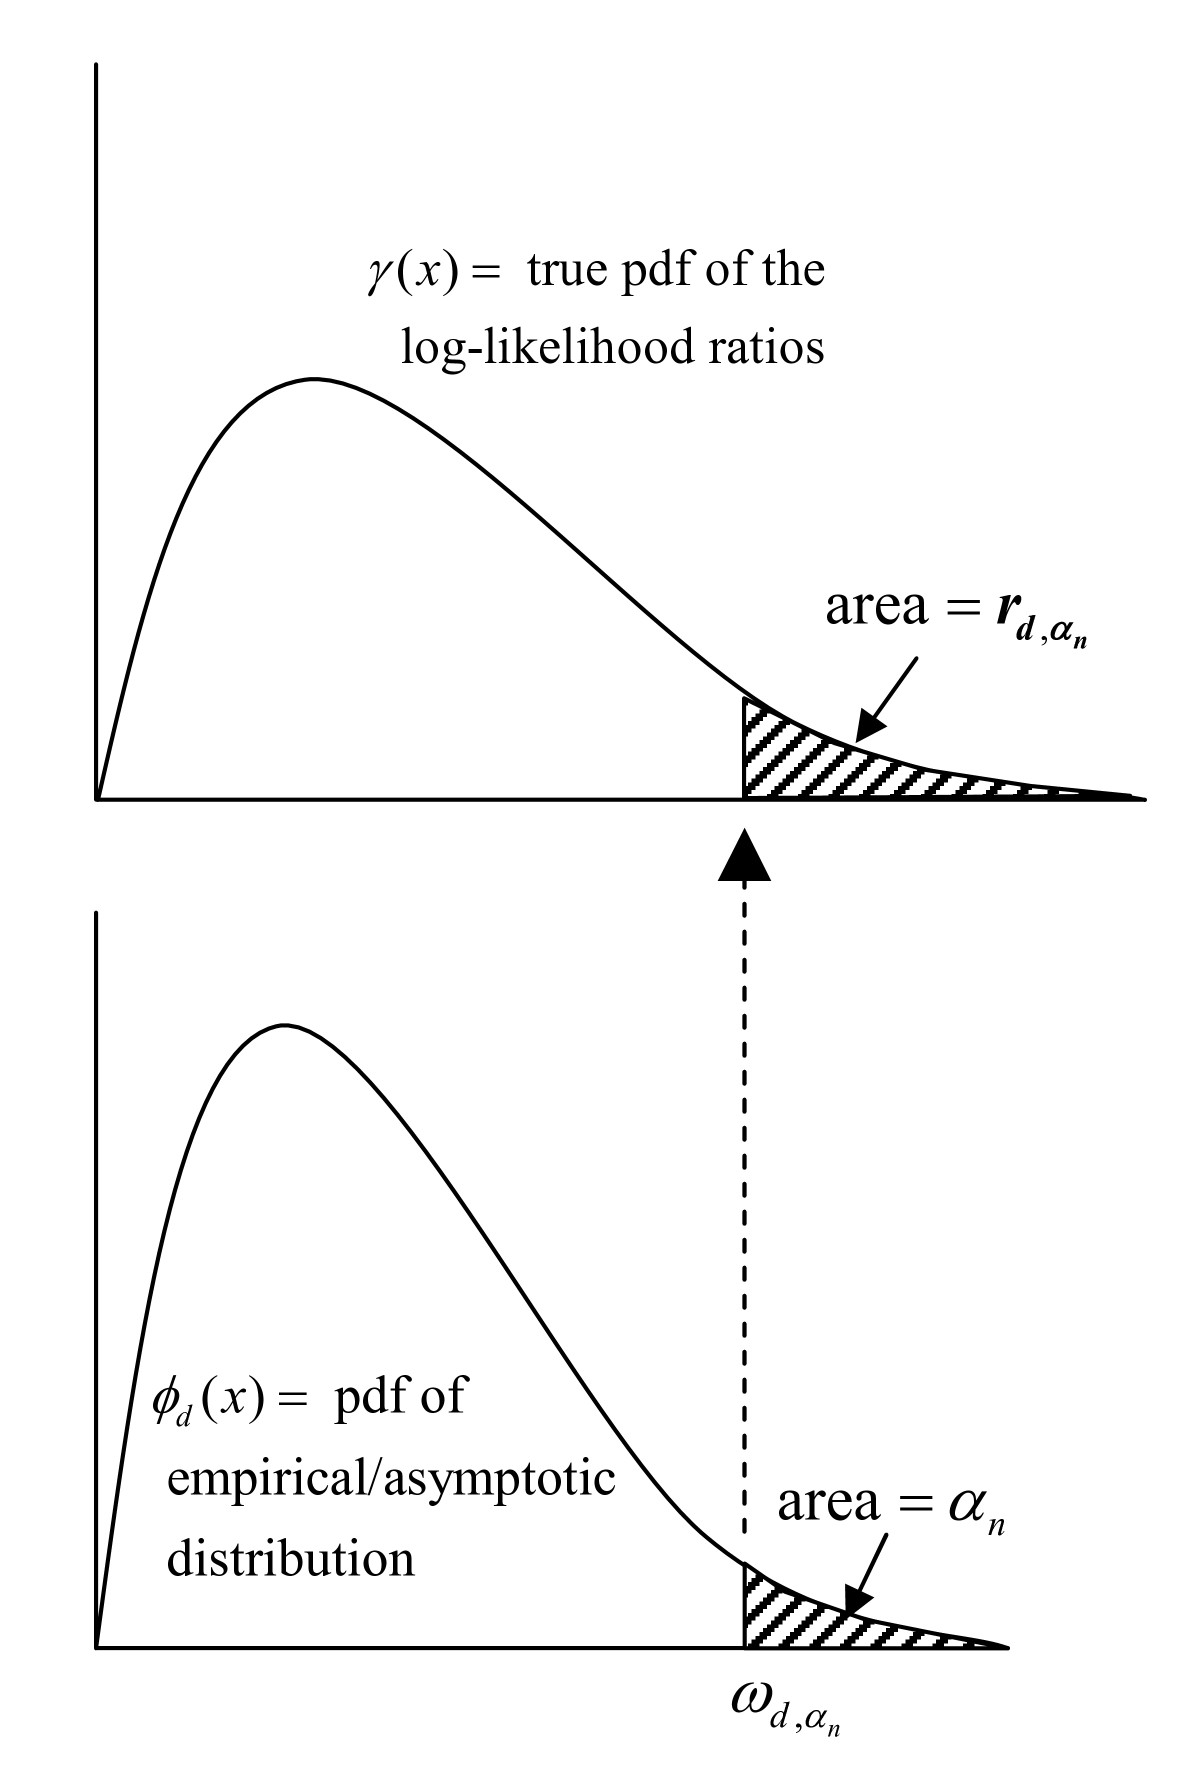 https://static-content.springer.com/image/art%3A10.1186%2F1476-072X-9-61/MediaObjects/12942_2010_Article_394_Fig2_HTML.jpg